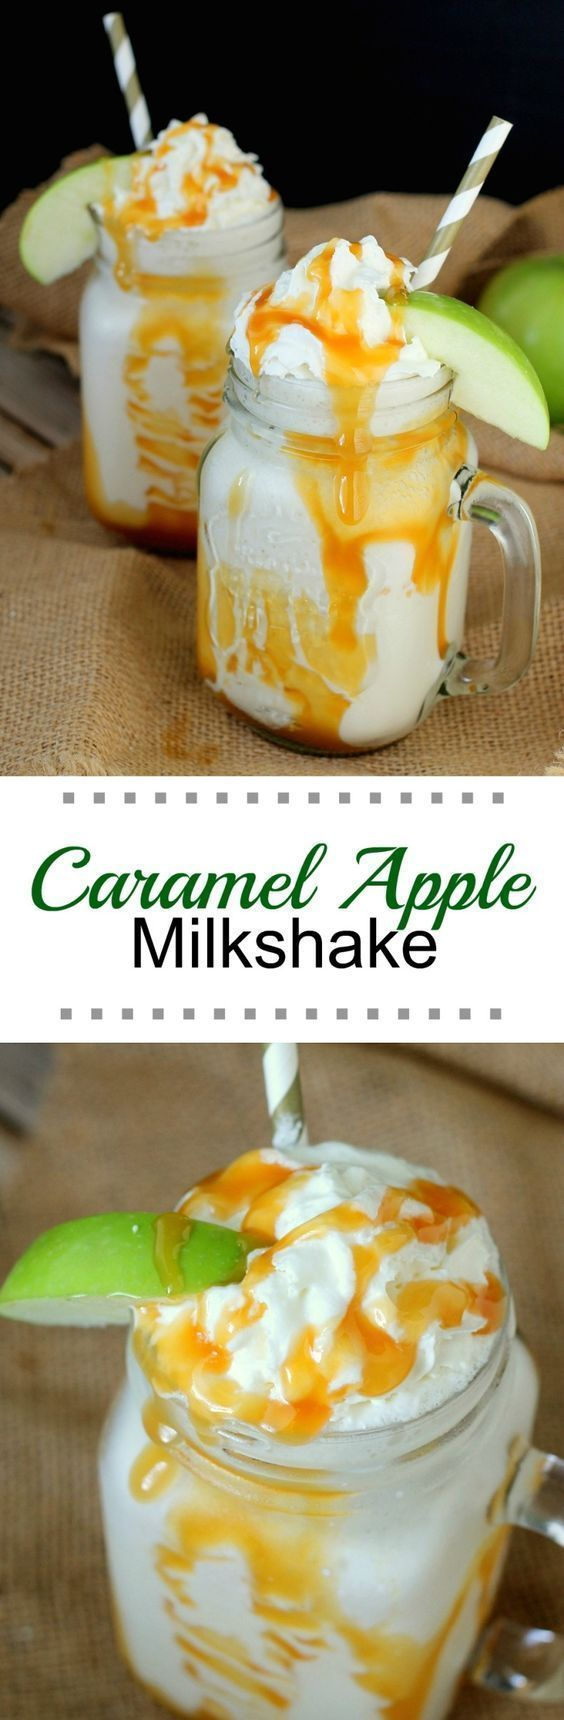 This Caramel Apple Milkshake is perfect for fall season and for fulfilling the need for total comfort food … milkshakes are so very comforting!